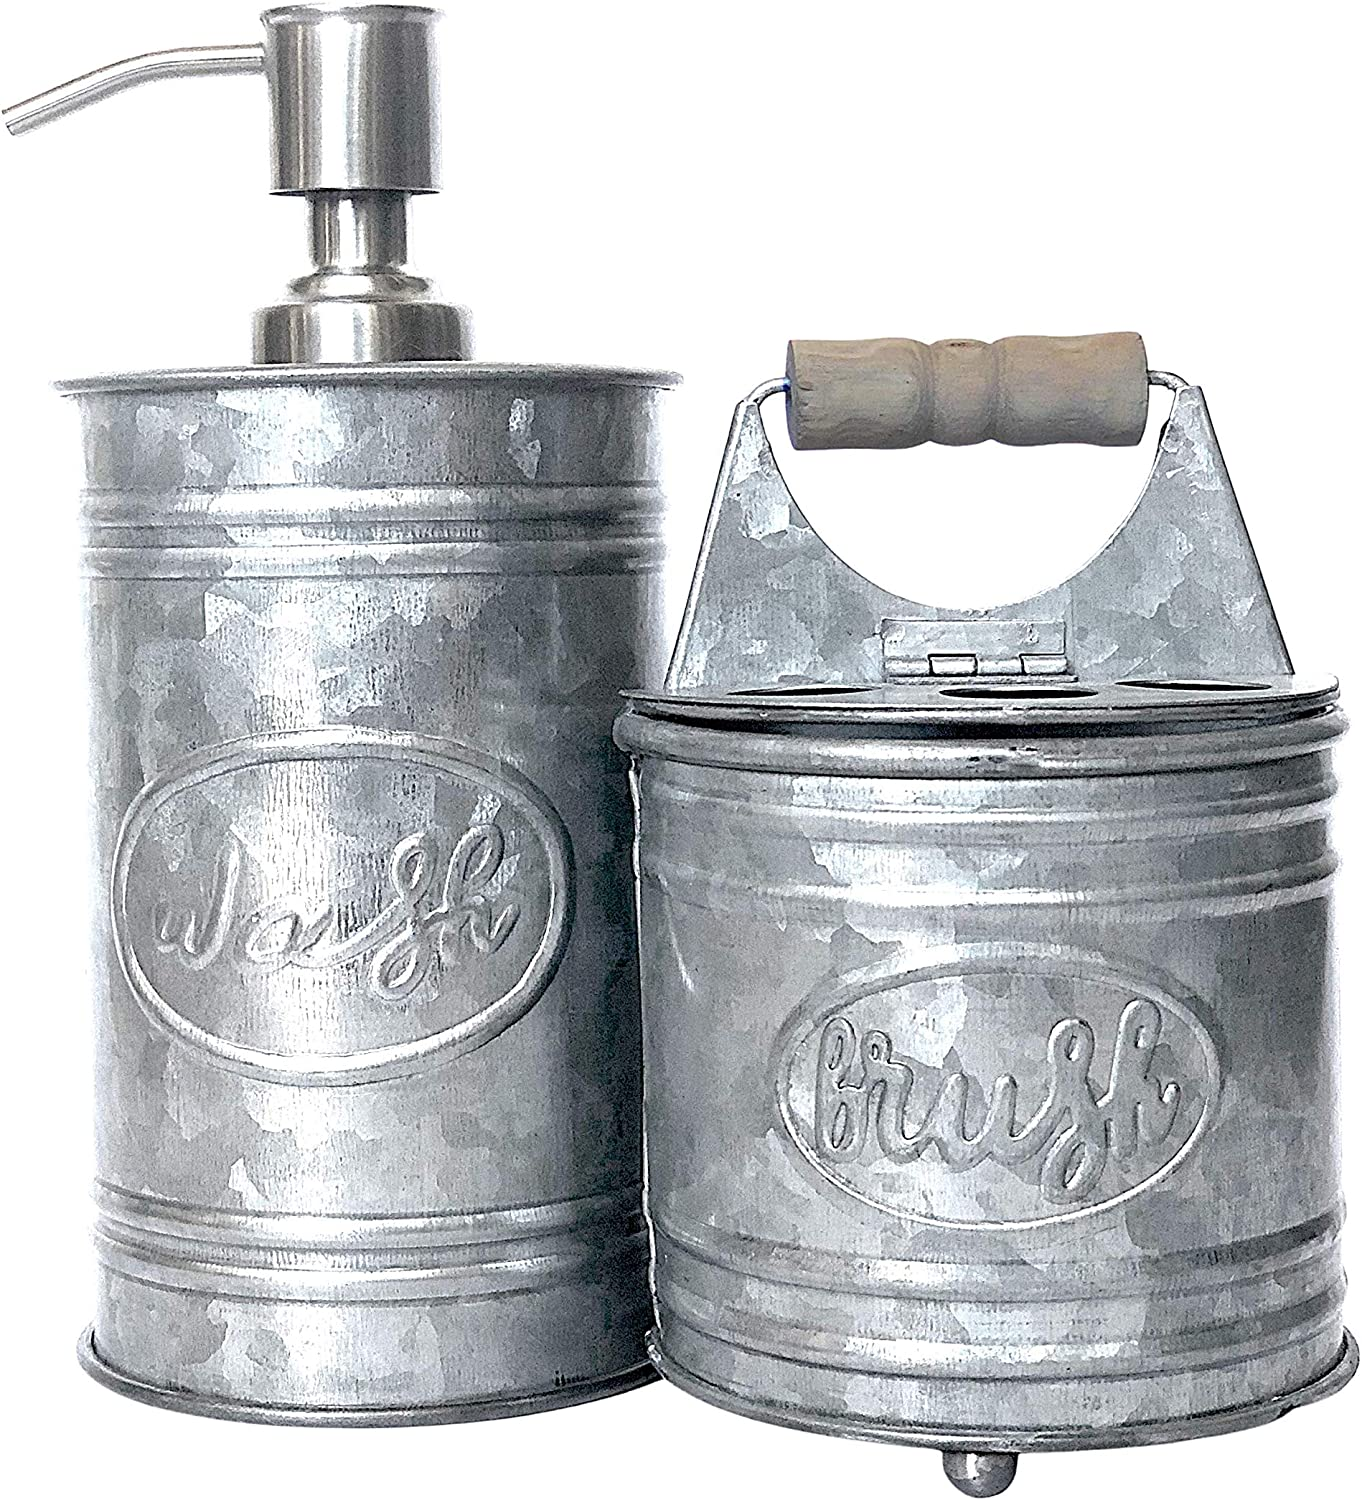 Autumn Alley Galvanized Bathroom Accessories Set - Includes Farmhouse Hand Soap Dispenser and Rustic Toothbrush Holder | Rustic Farmhouse Decor for Bathroom Countertop | Farmhouse Bathroom Decor